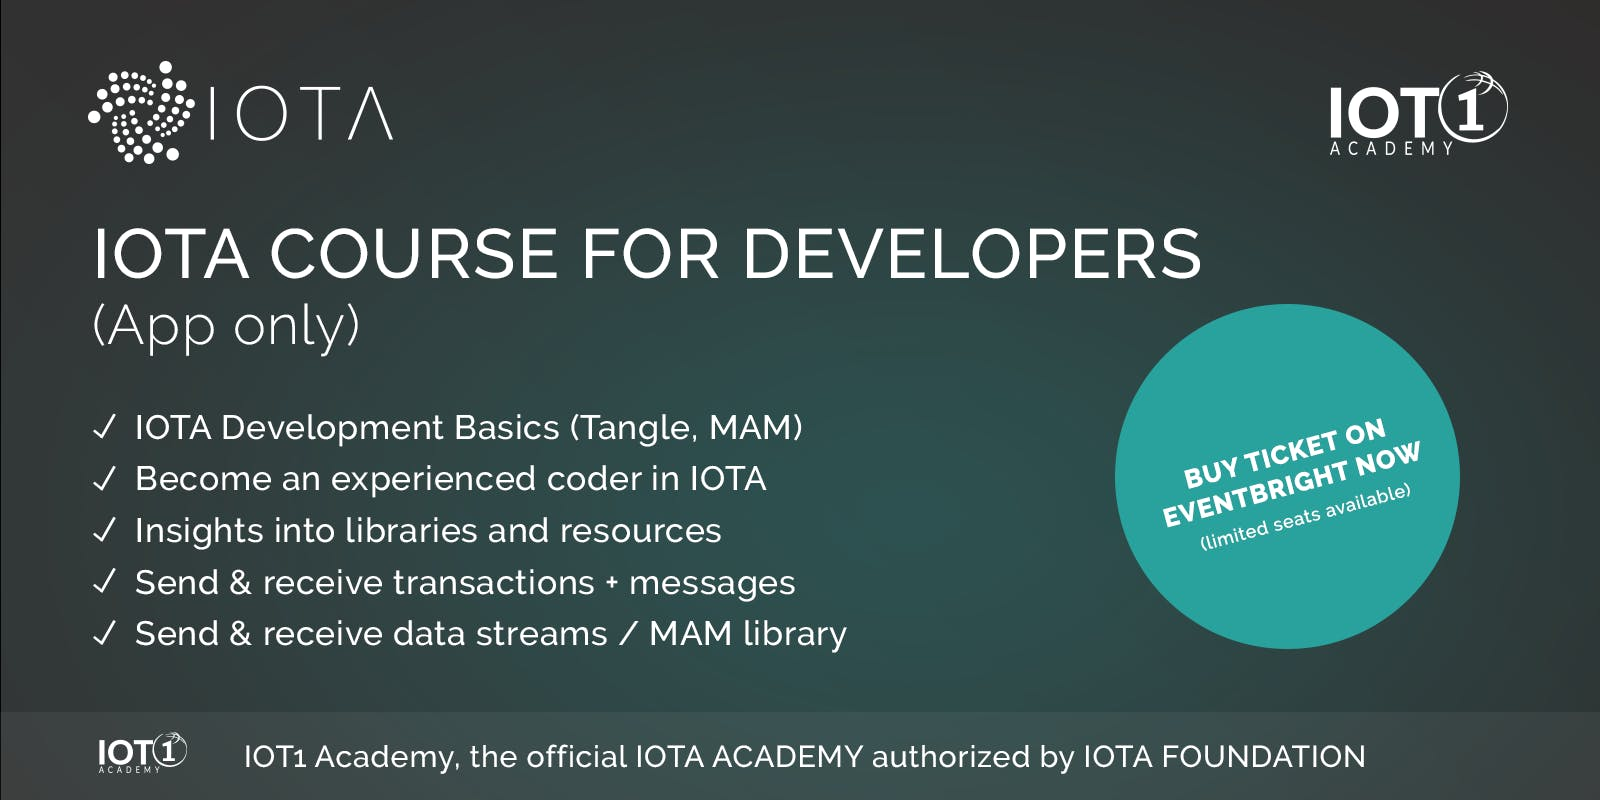 IOTA Course for Developers // Learning App Only (low price but no support)